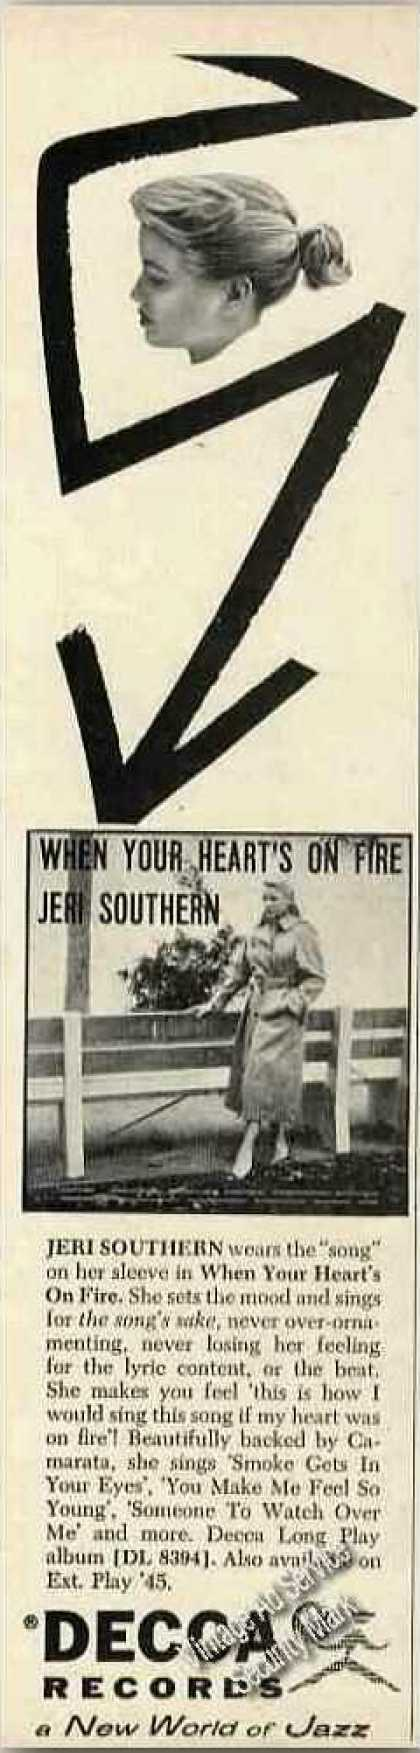 Jeri Southern Photo Rare Decca Records (1957)